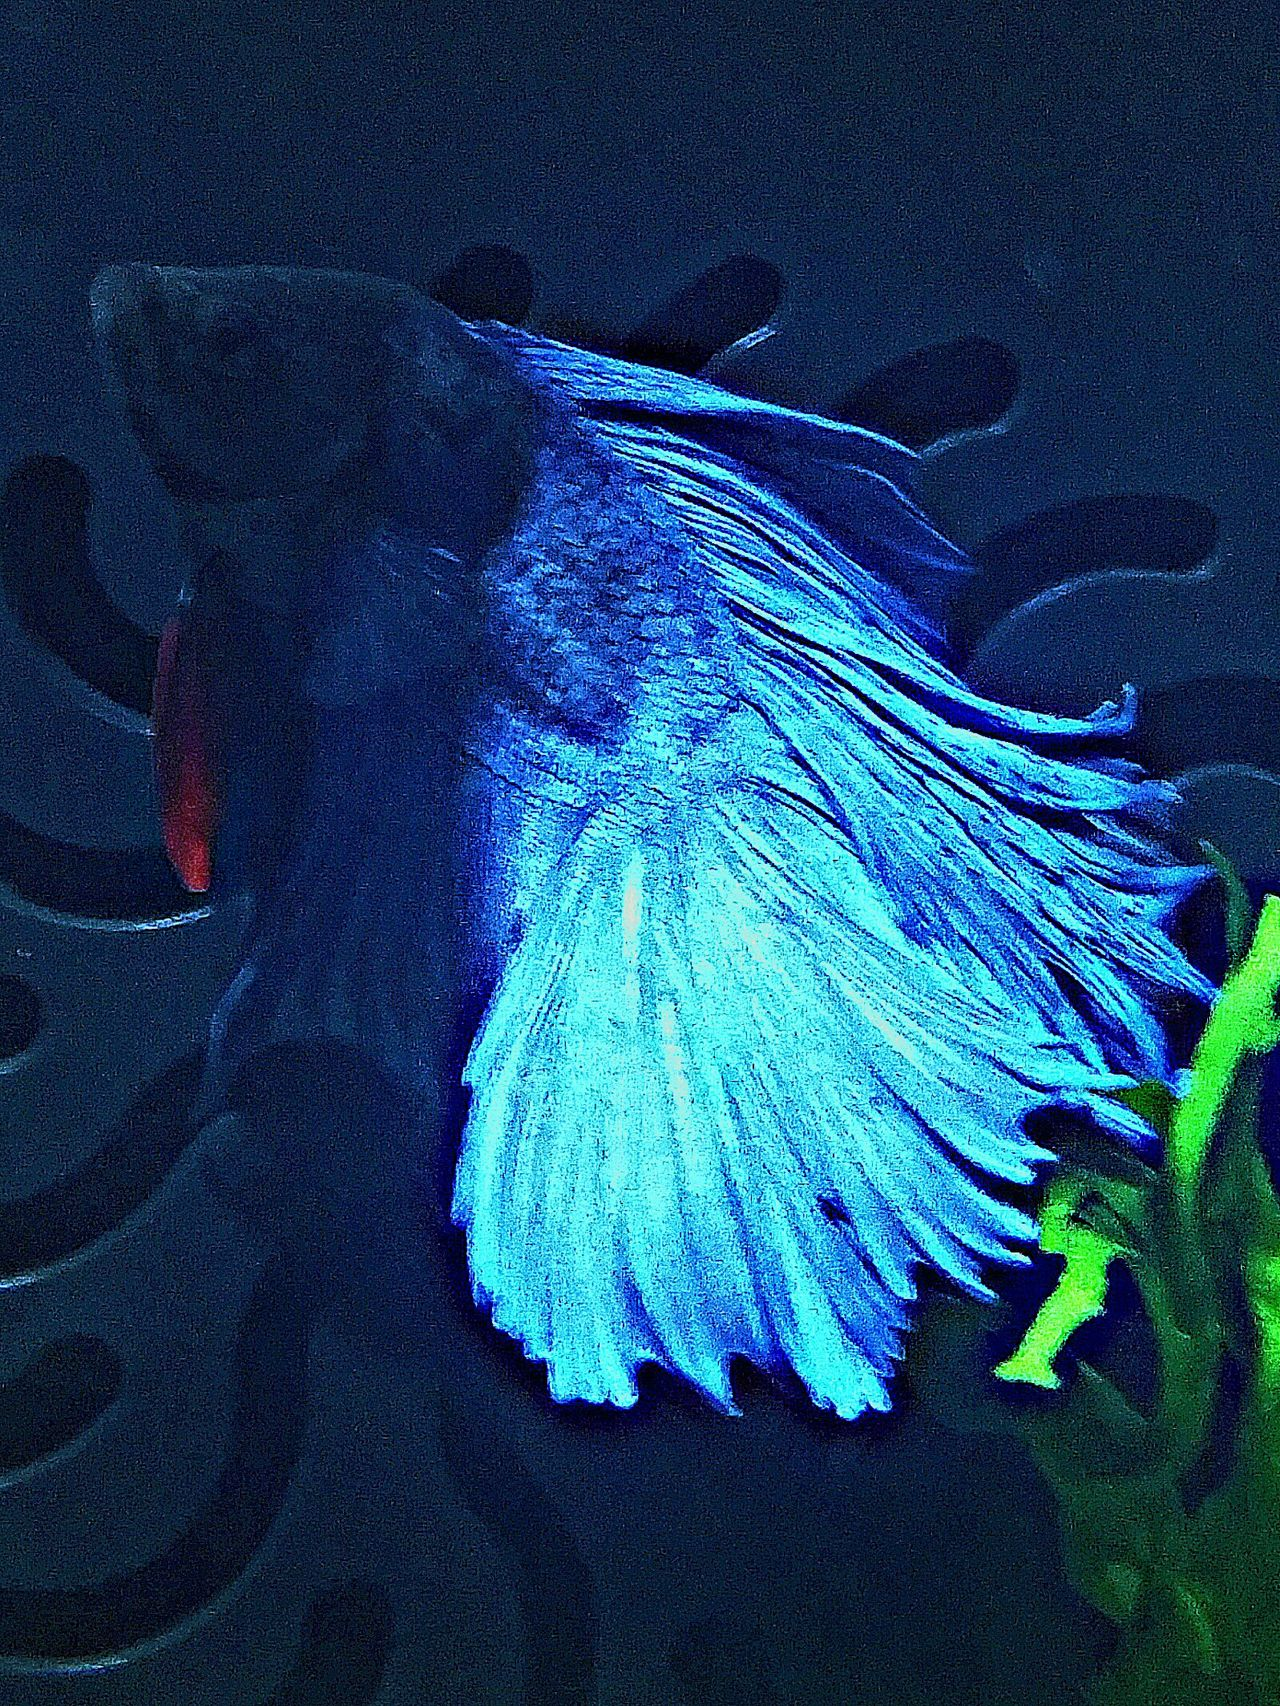 Fish Betta Fish Bettas Bettasiamesefish Bettafishcommunity Bettatank Aquarium Life Aquarium Photography